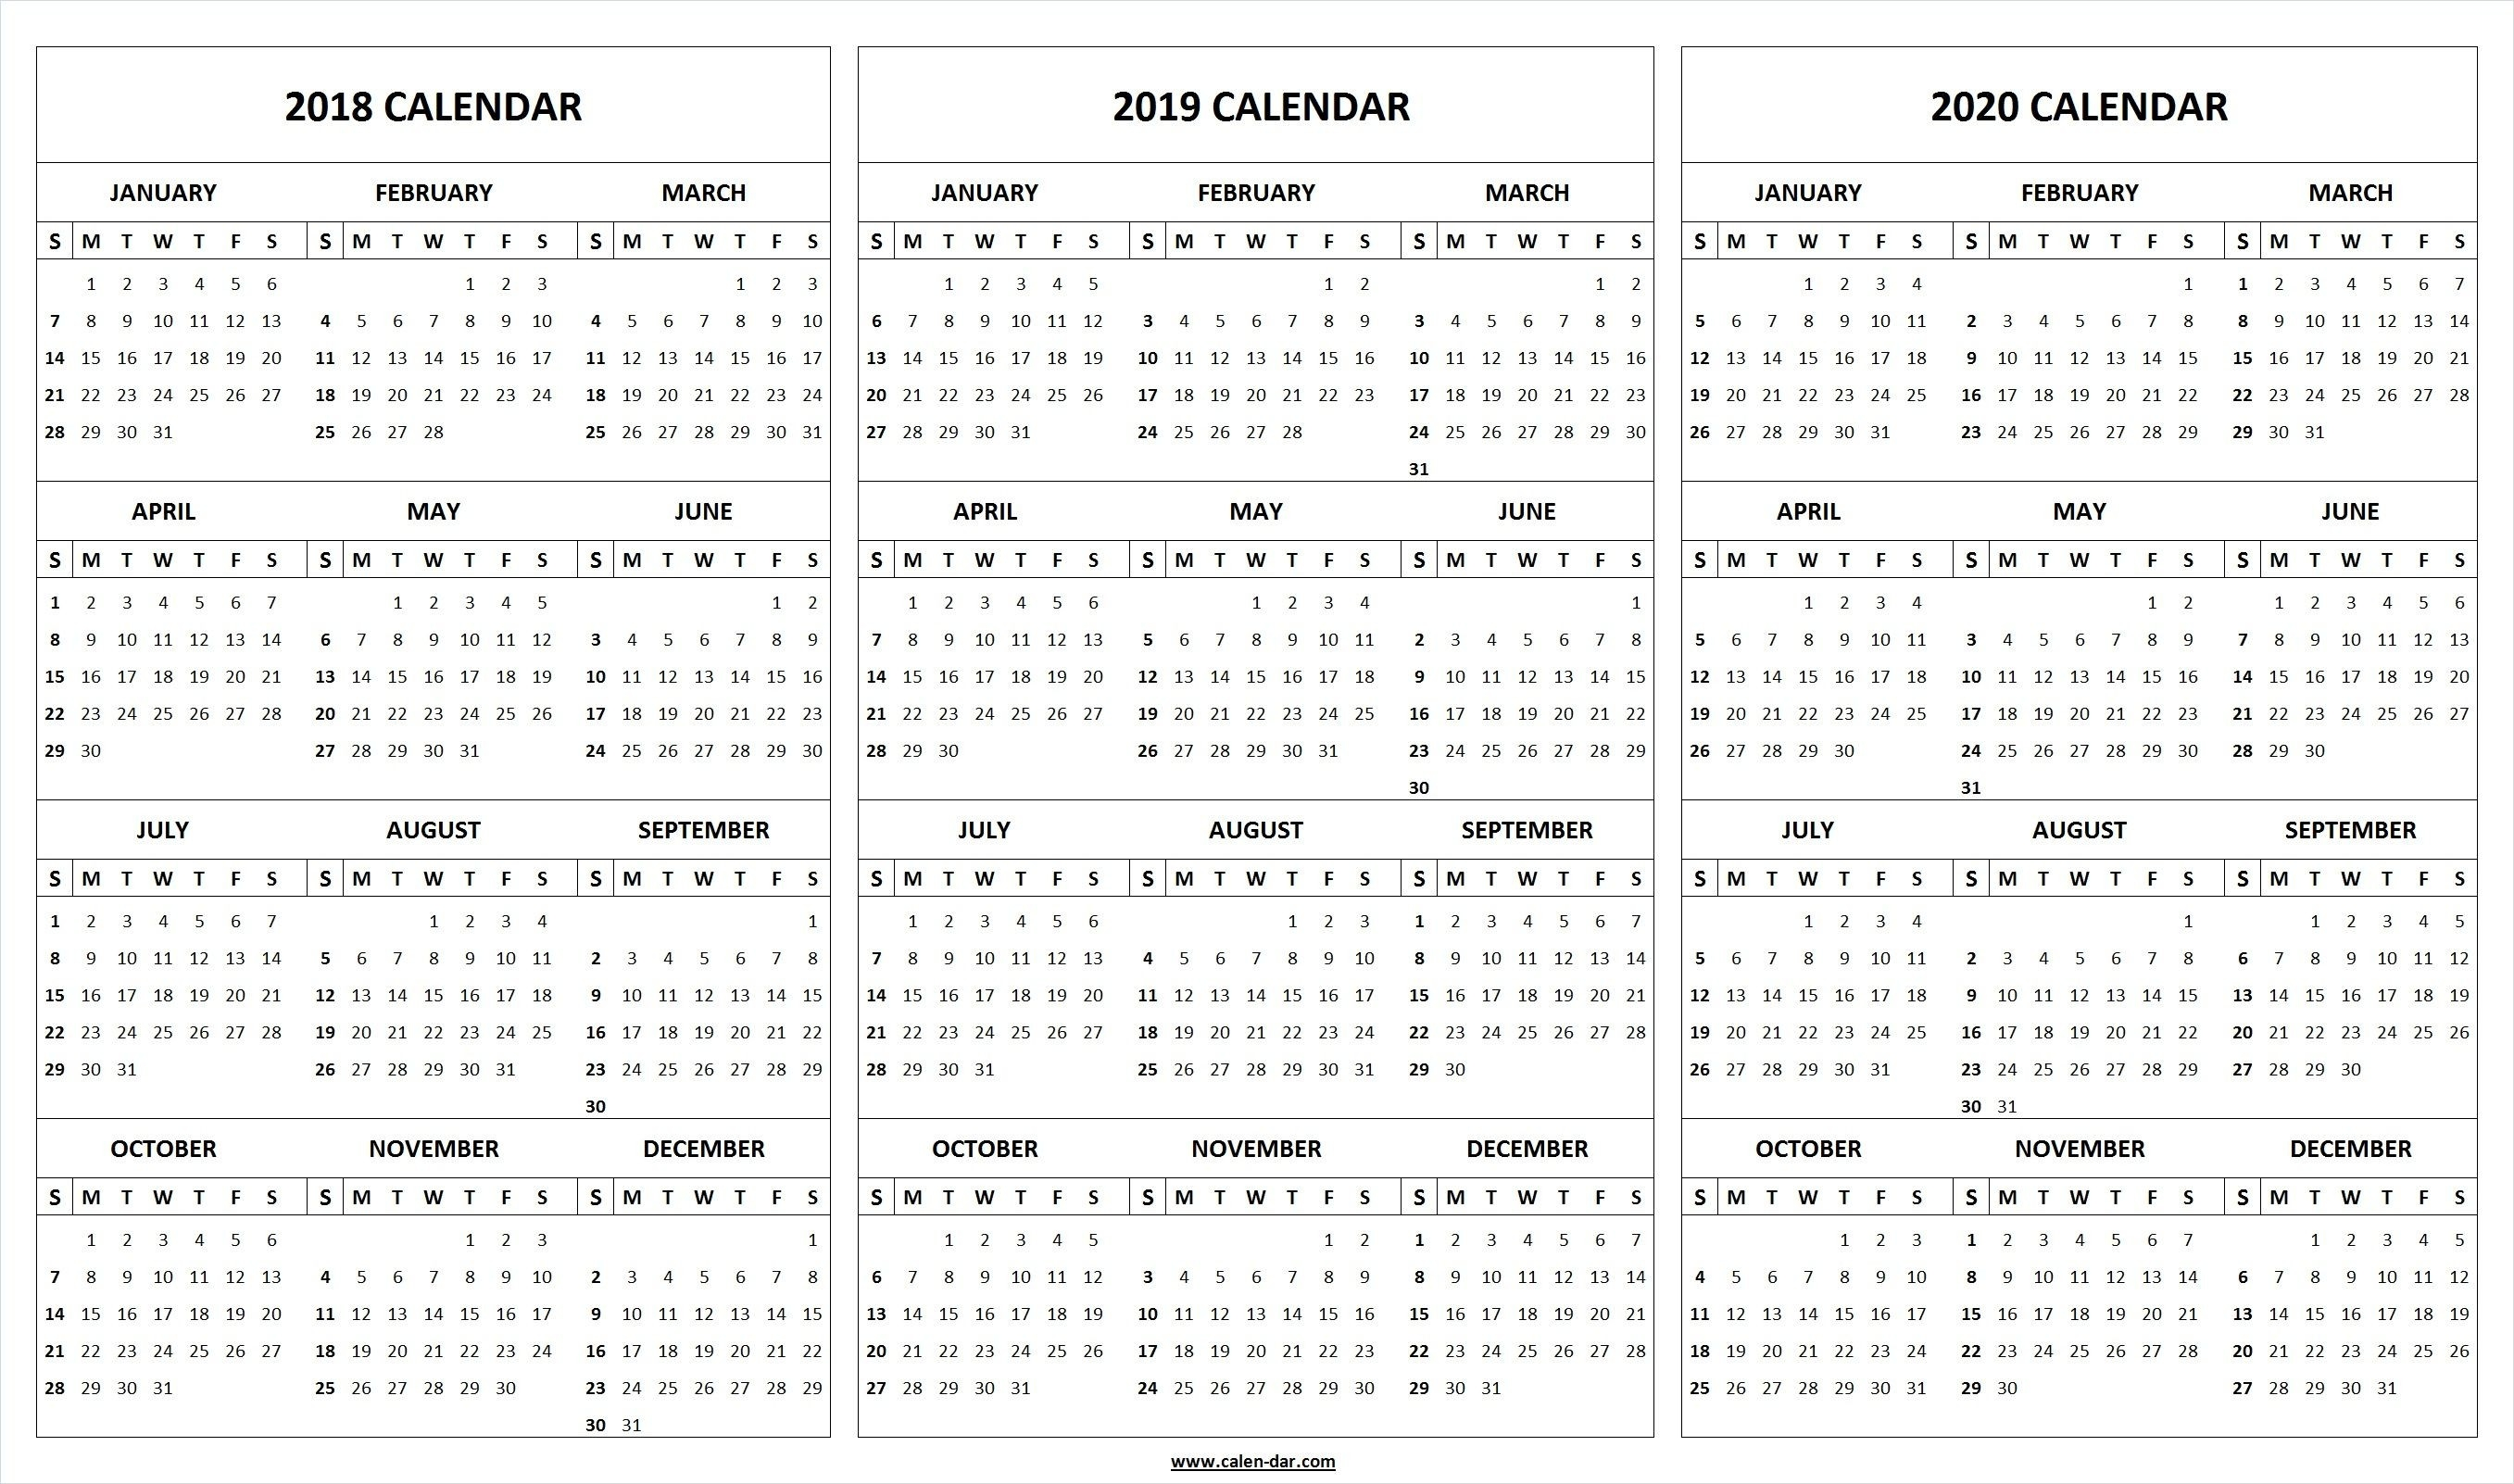 Print Blank 2018 2019 2020 Calendar Template | Organize-Blank Printable Calandes With 2 Months On A Page Year 2020